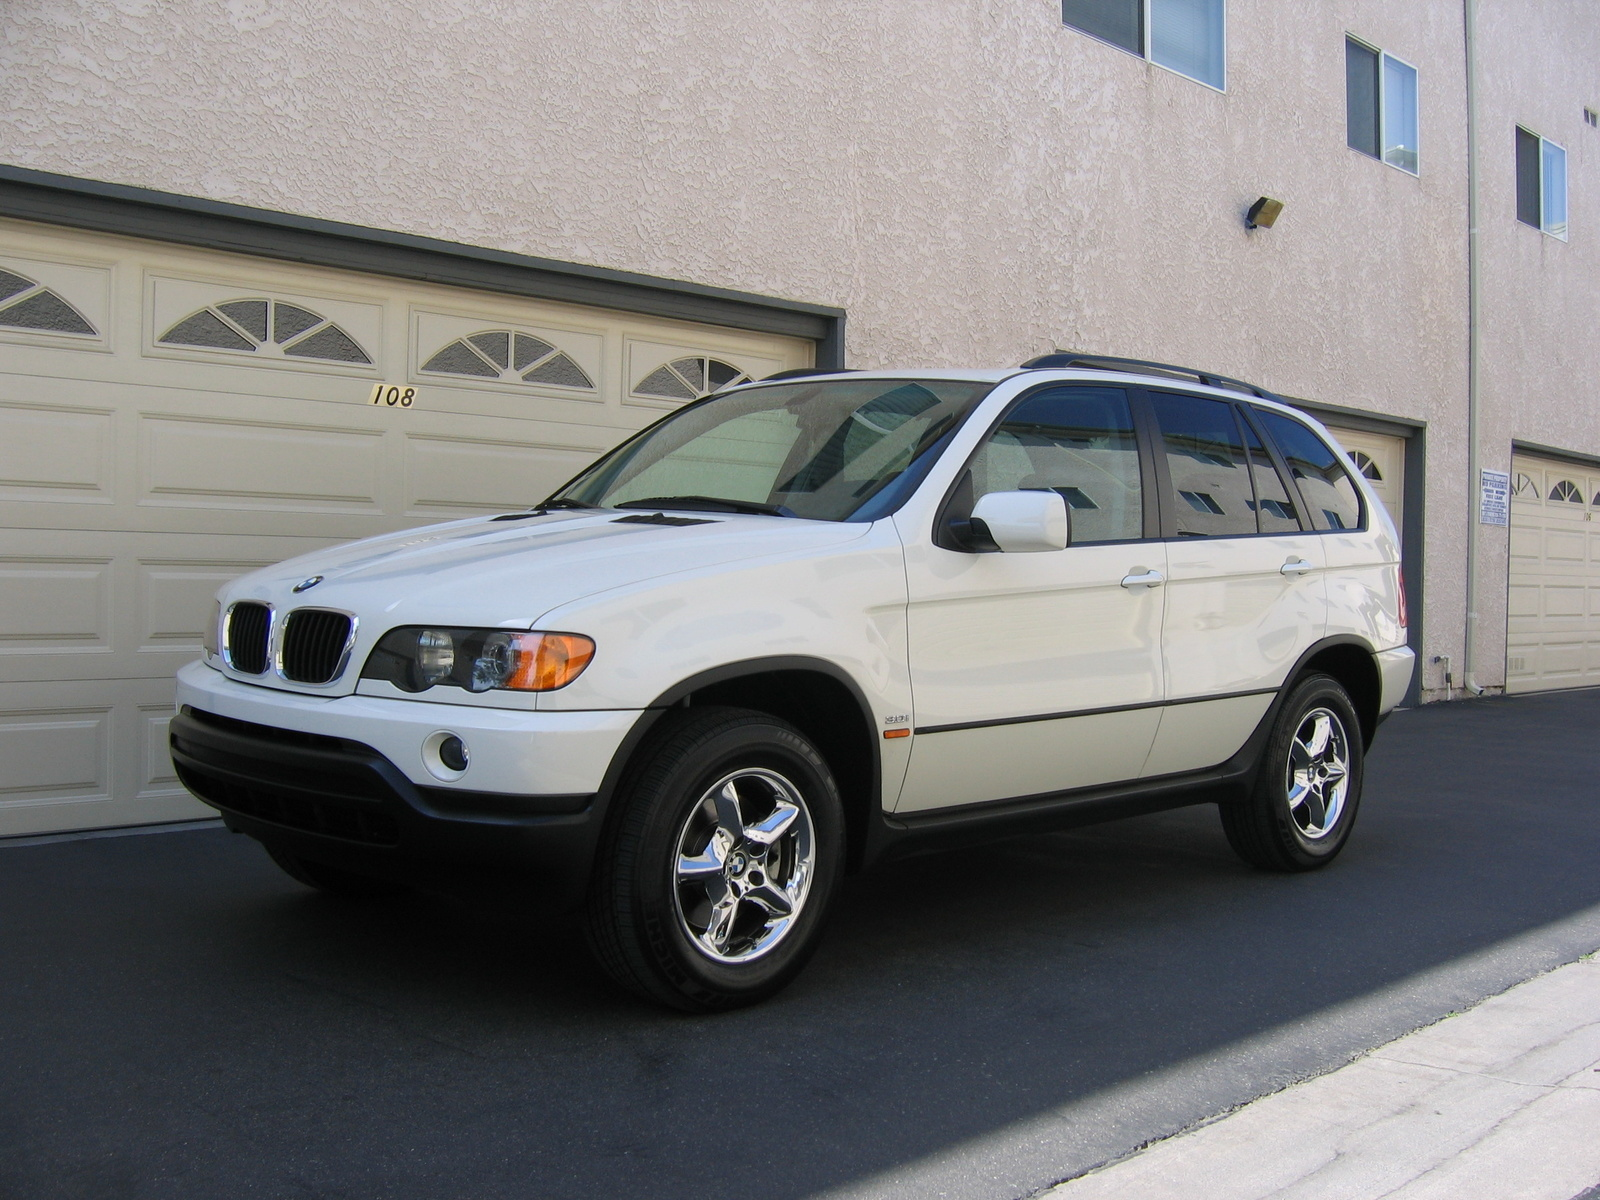 Picture of 2003 bmw x5 3 0i exterior gallery_worthy